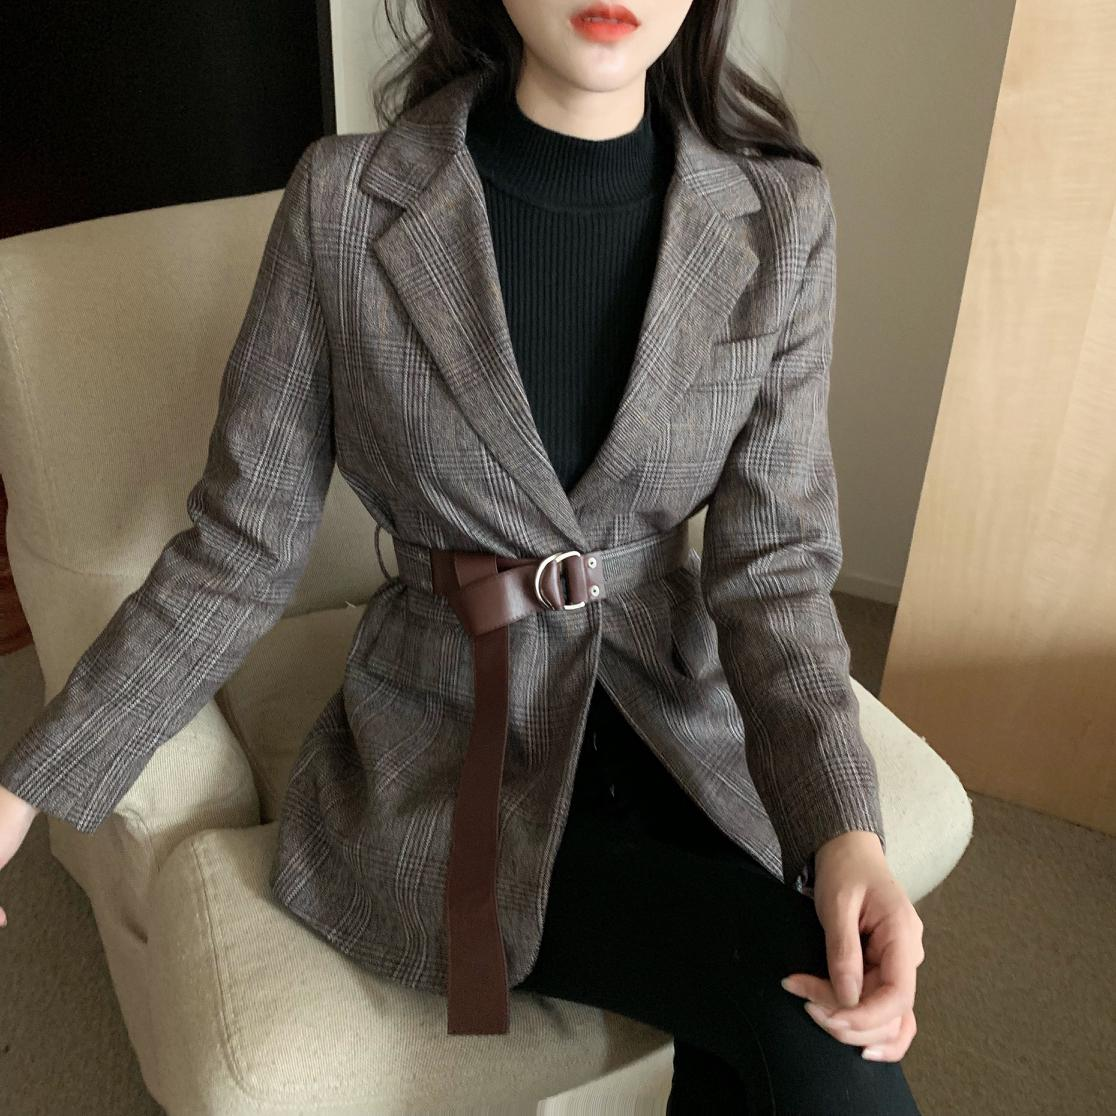 New Vintage Plaid Women Blazer Jackets With Belt Female Retro Suits Coat Spring Autumn Blazers Outerwear